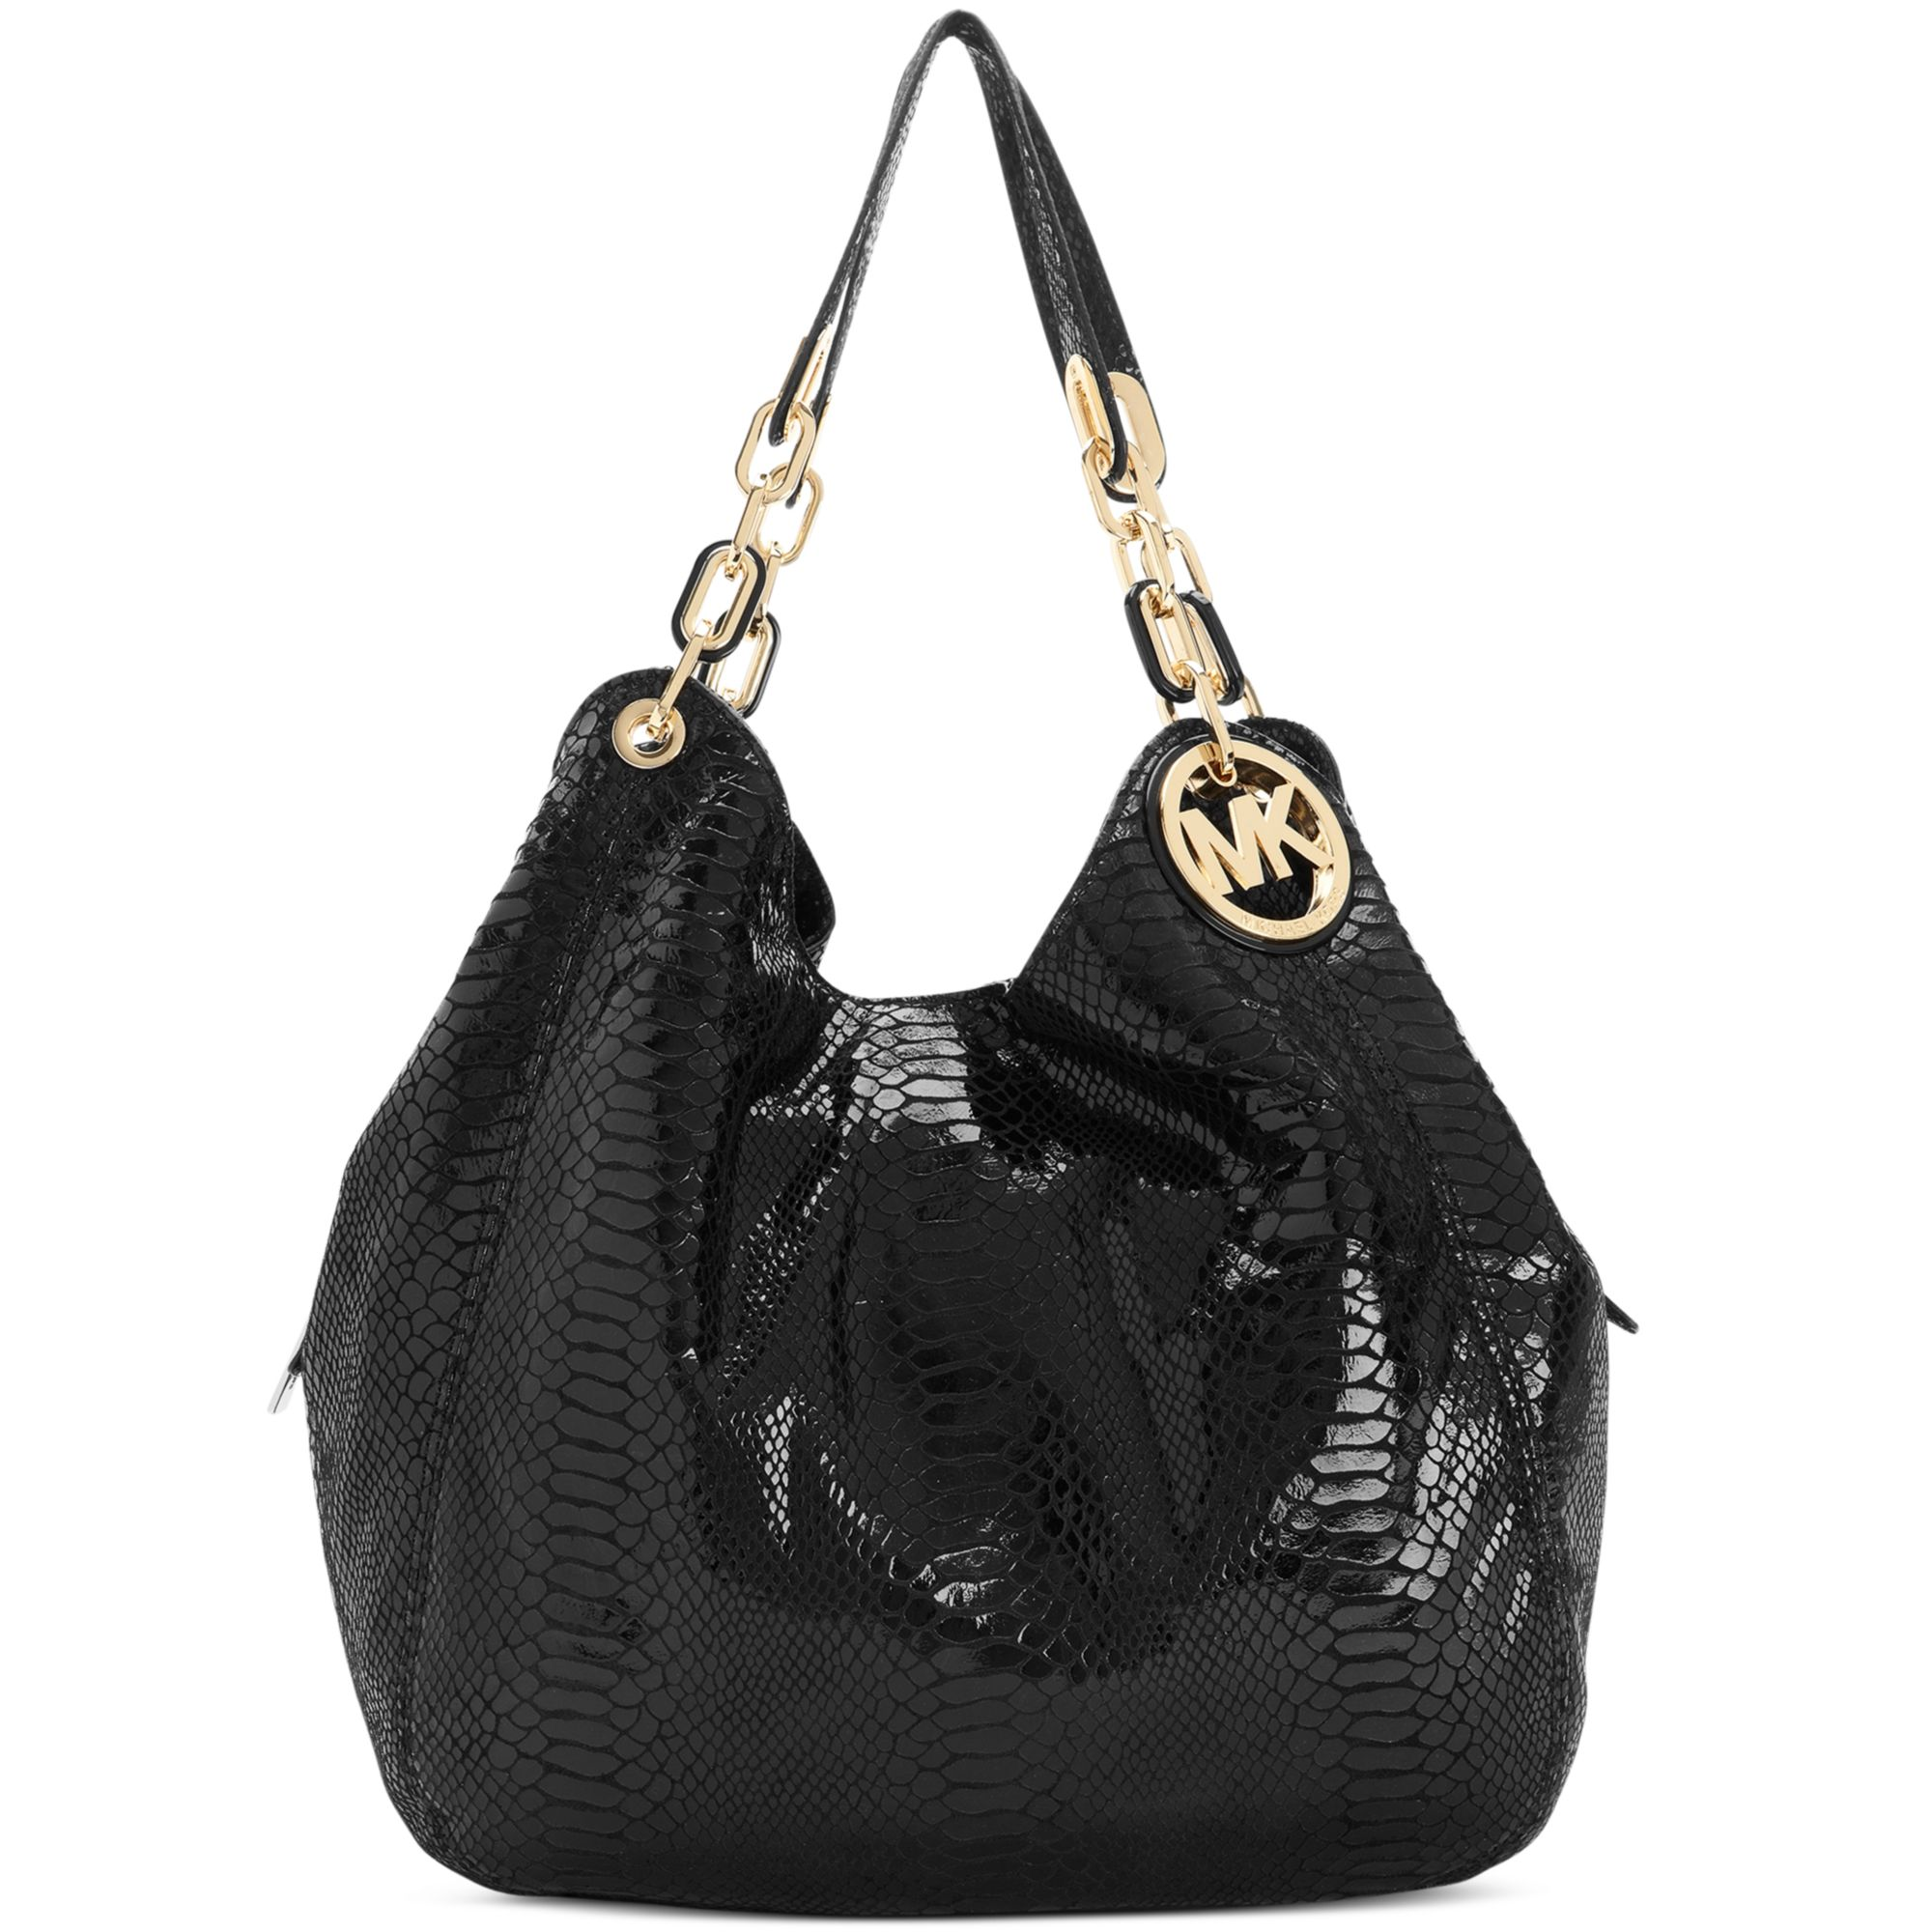 996db82a0f0d shopping lyst michael kors fulton large shoulder tote in black 6252e 91748